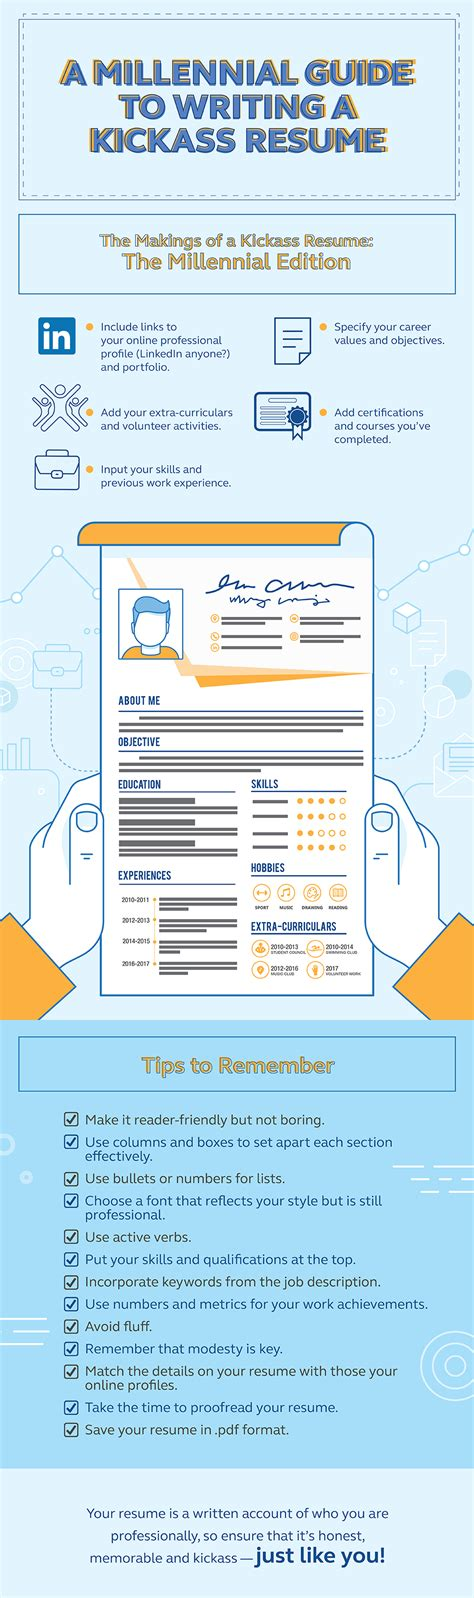 Guide To Writing Resume by A Millennial Guide To Writing A Kickass Resume Go Globe